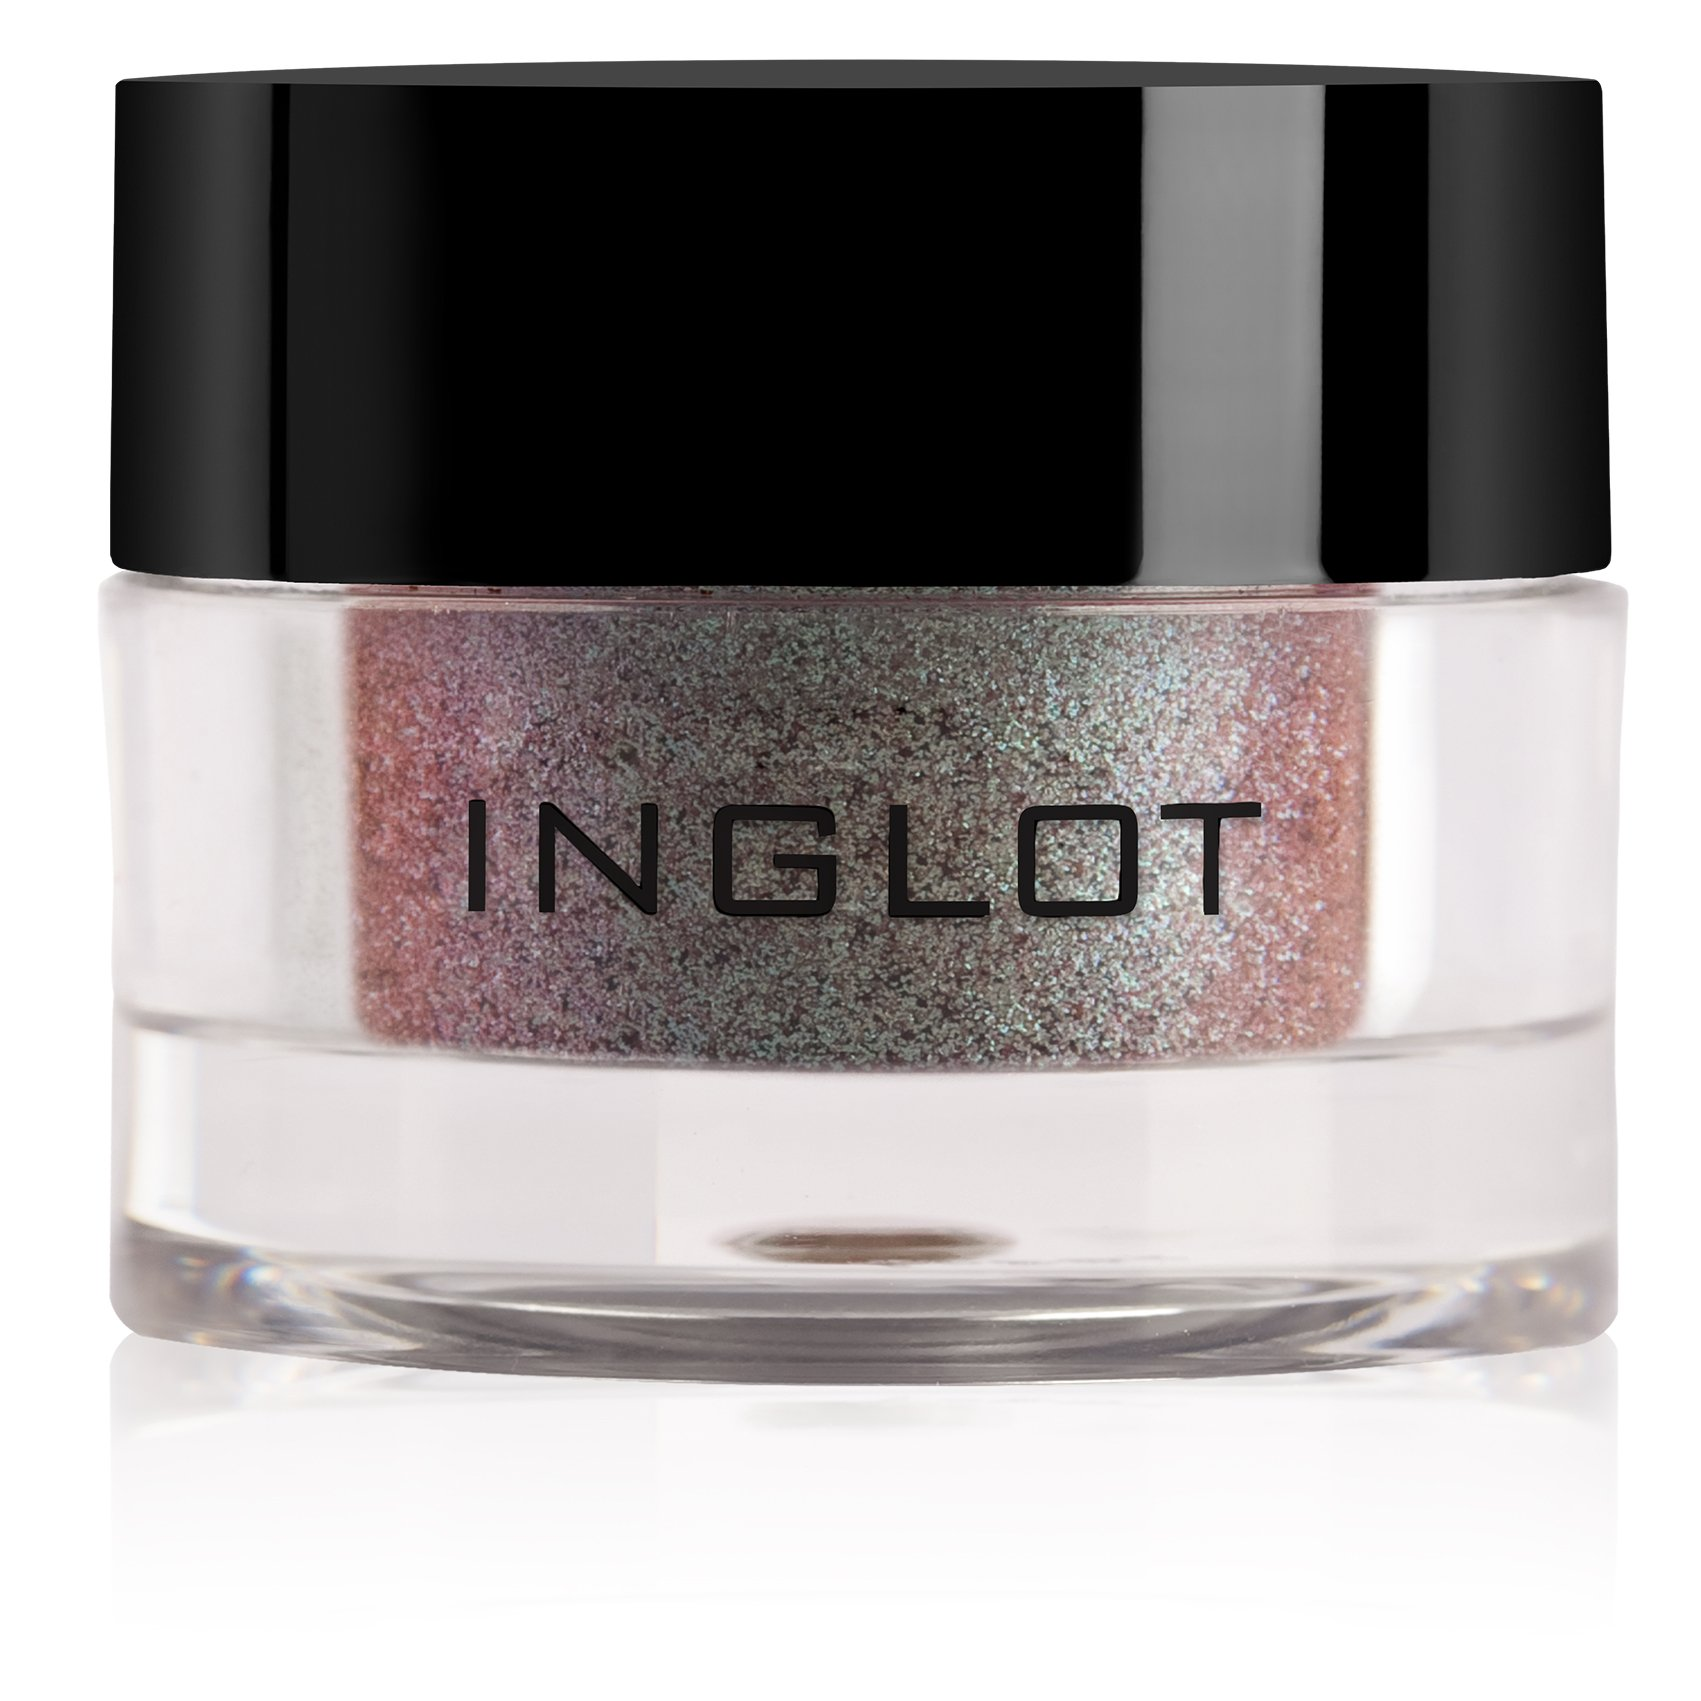 AMC PURE PIGMENT EYE SHADOW 85 by Inglot